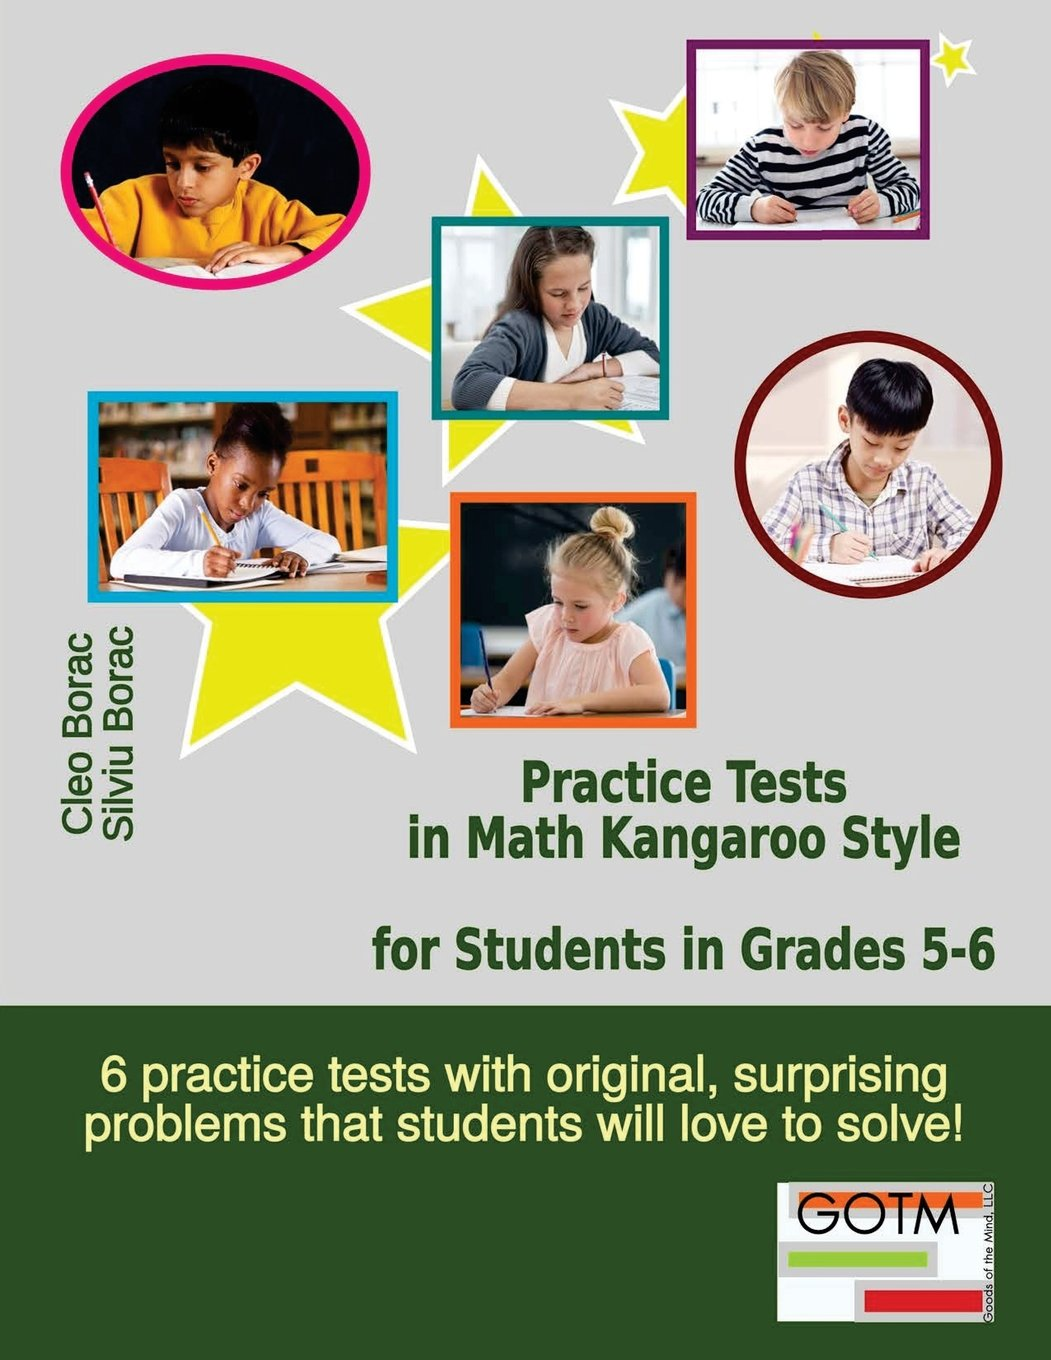 Practice Tests in Math Kangaroo Style for Students in Grades 5-6 (Math Challenges for Gifted Students) (Volume 3) pdf